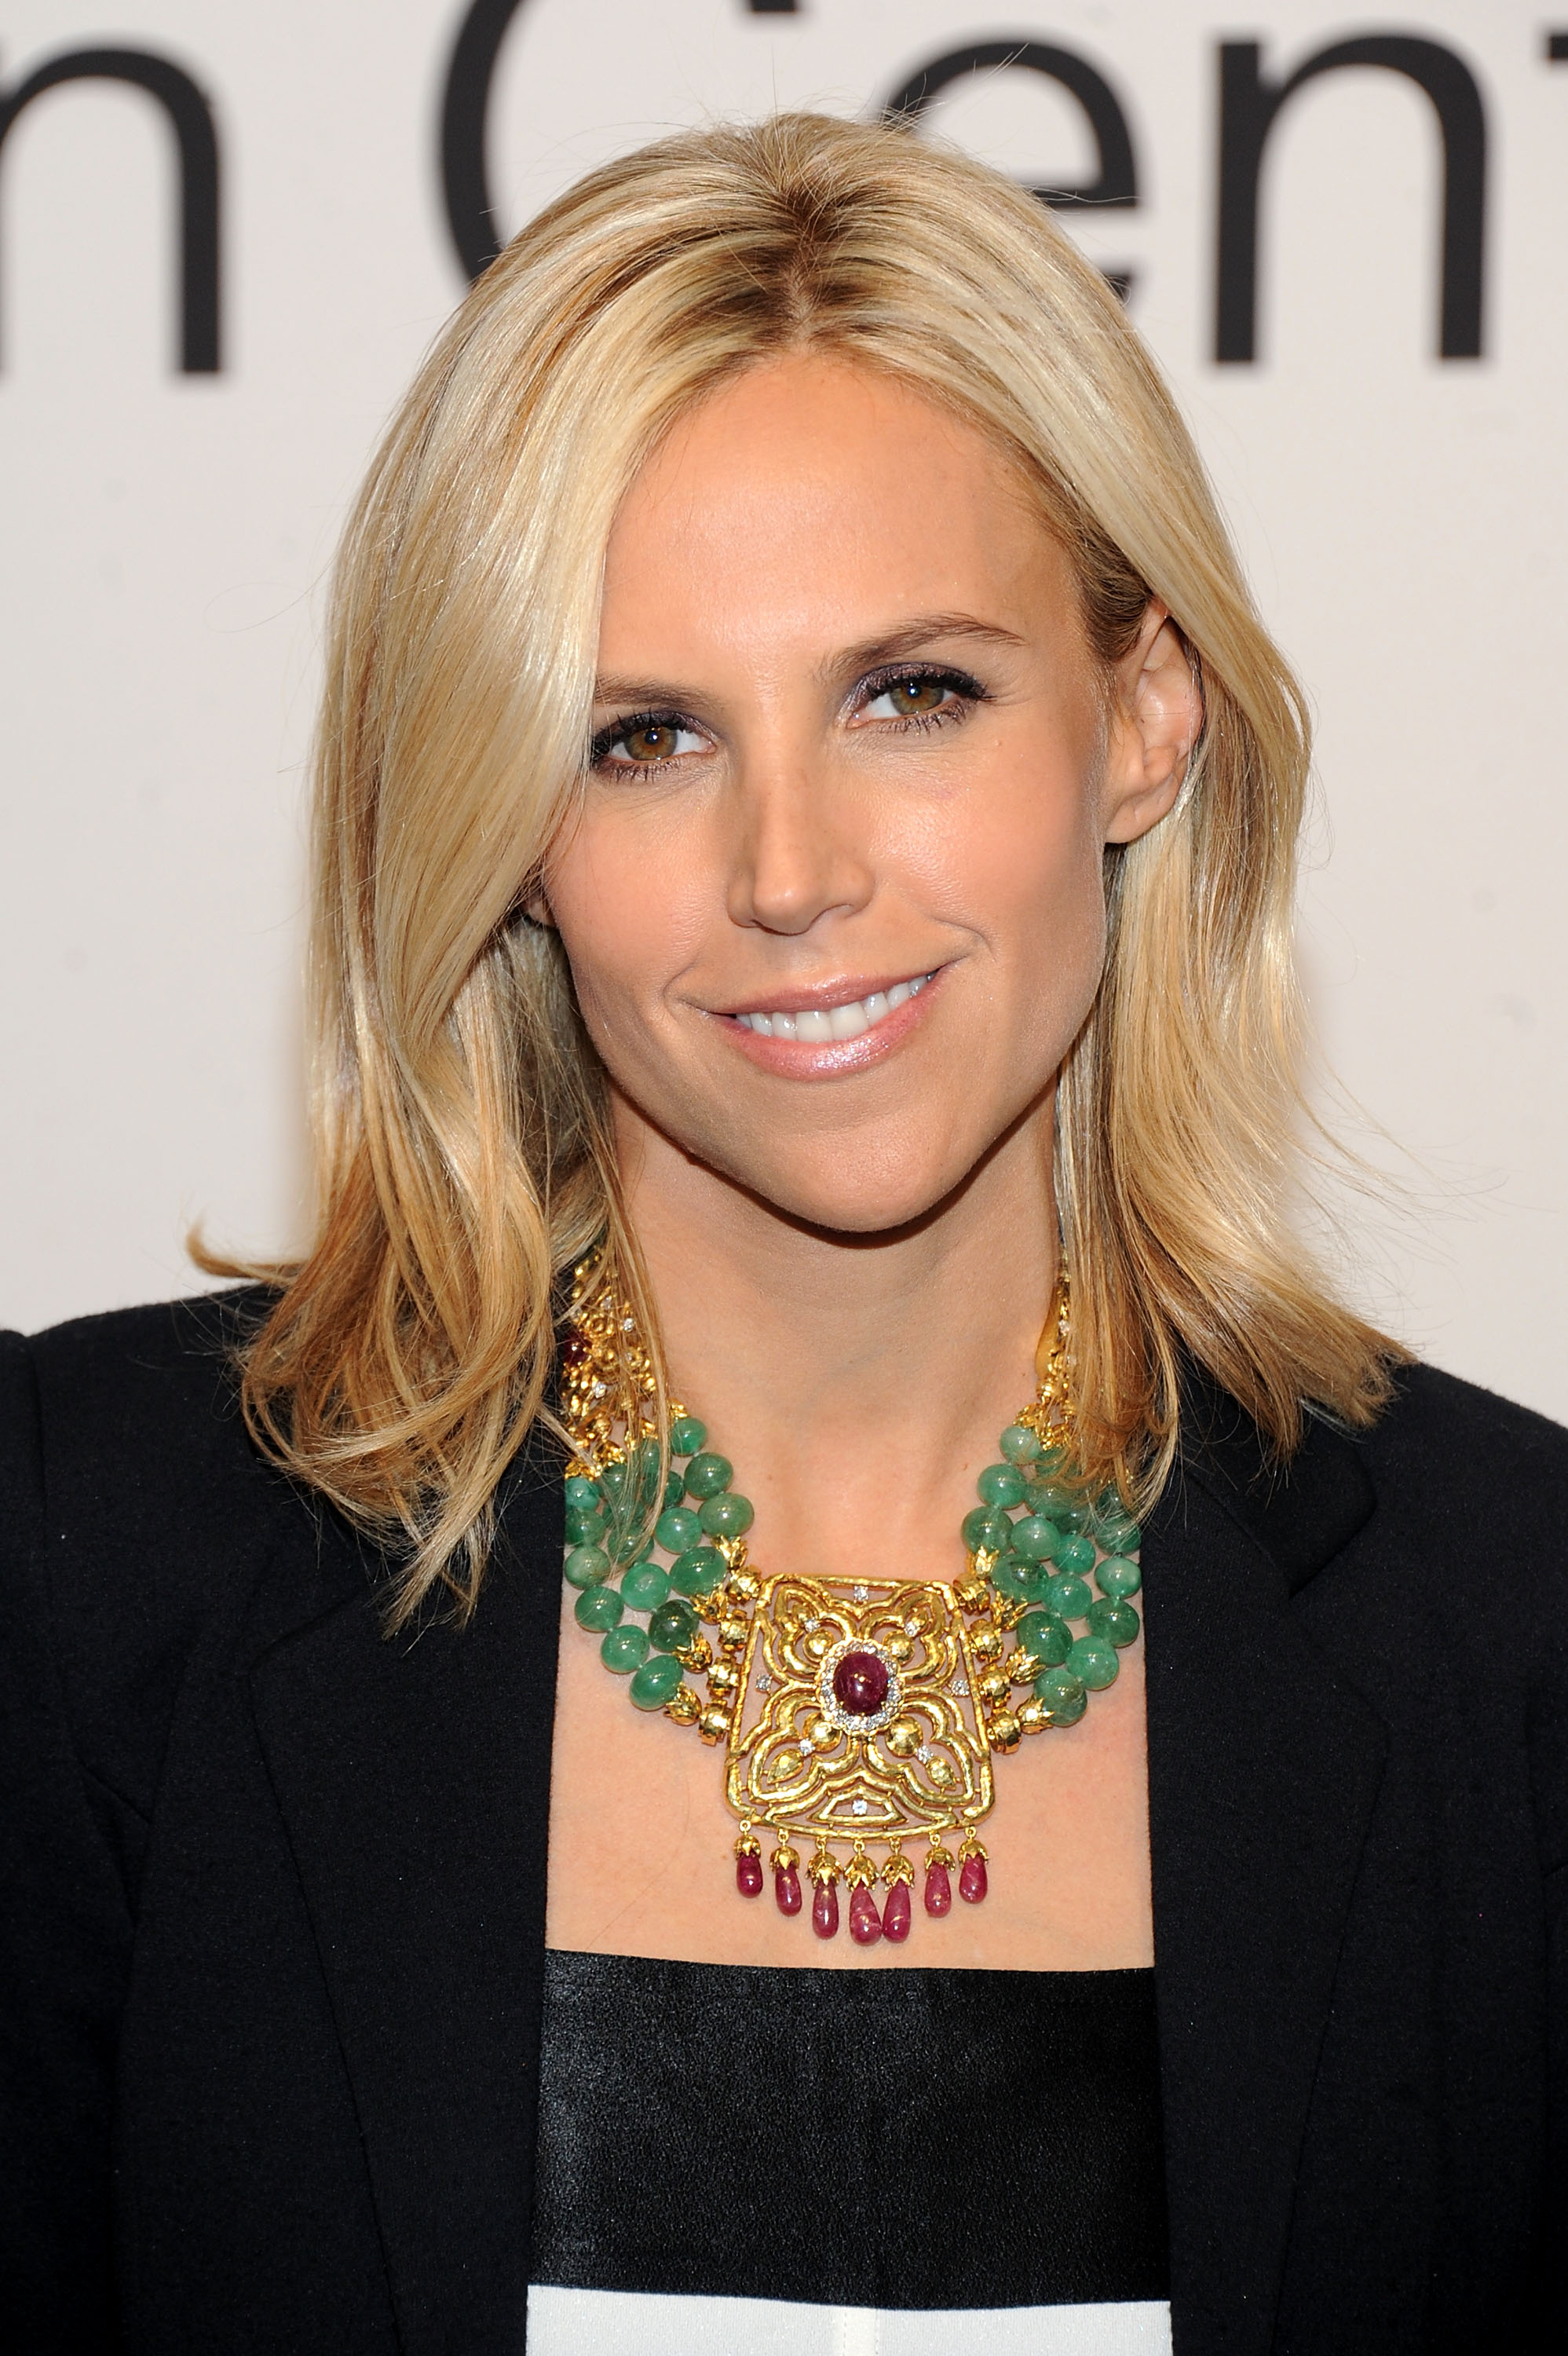 Tory Burch (née Robinson; born June 17, ) is an American fashion designer, businesswoman and philanthropist. She is the chairman, CEO and designer of her own brand Tory Burch LLC. She was listed as the 73rd most powerful woman in the world by Forbes in